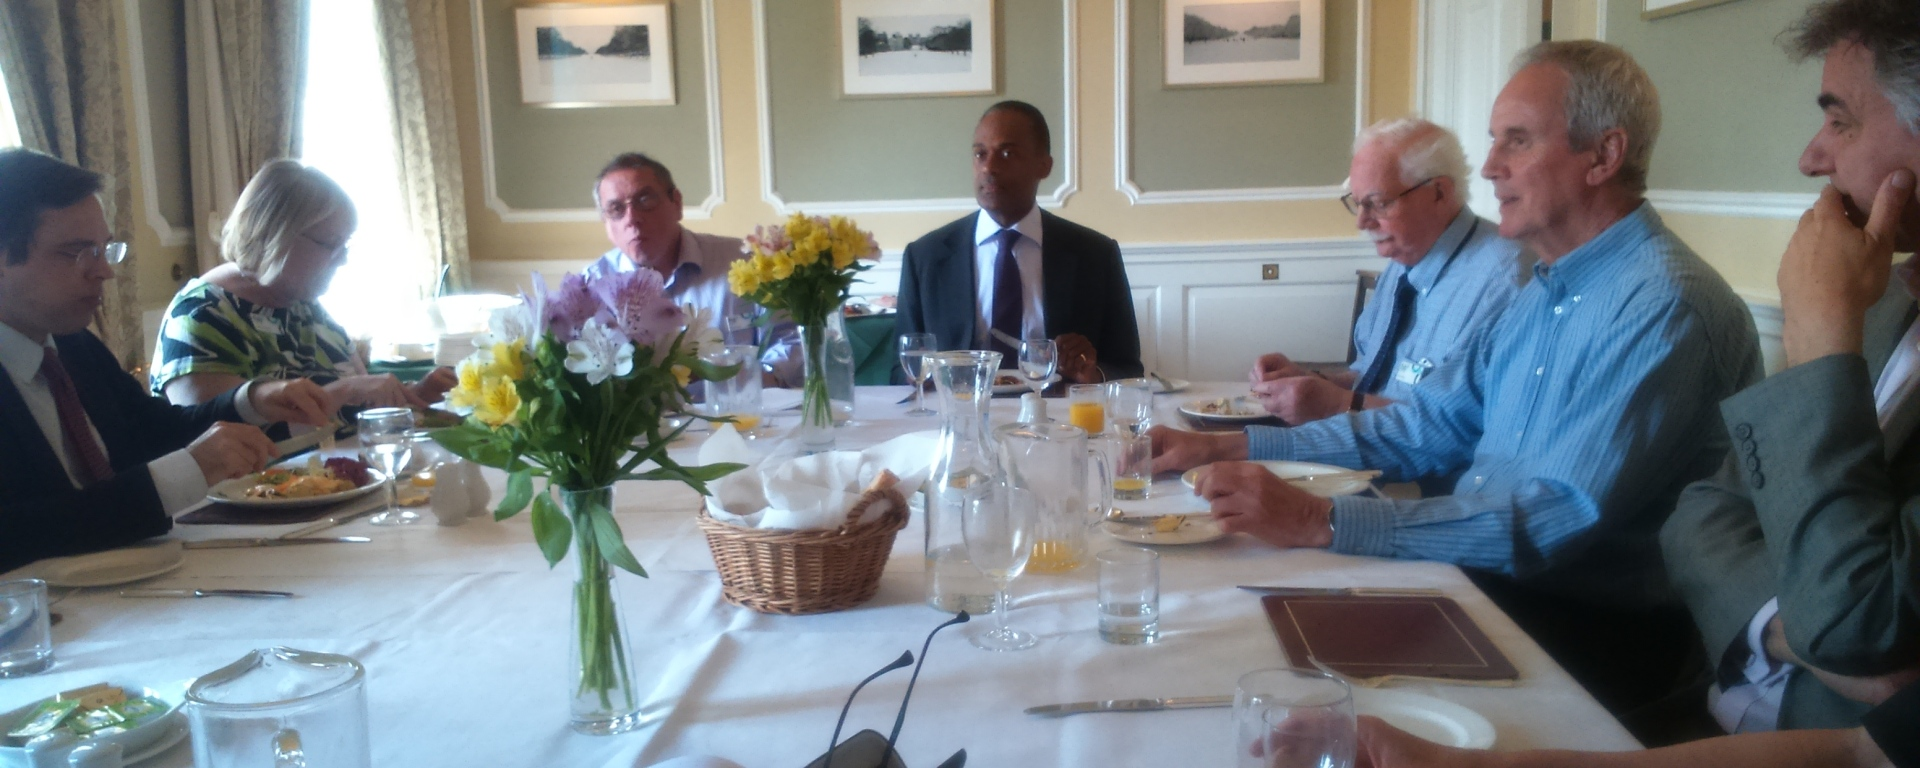 adam afriyie mp lunch cumberland lodge